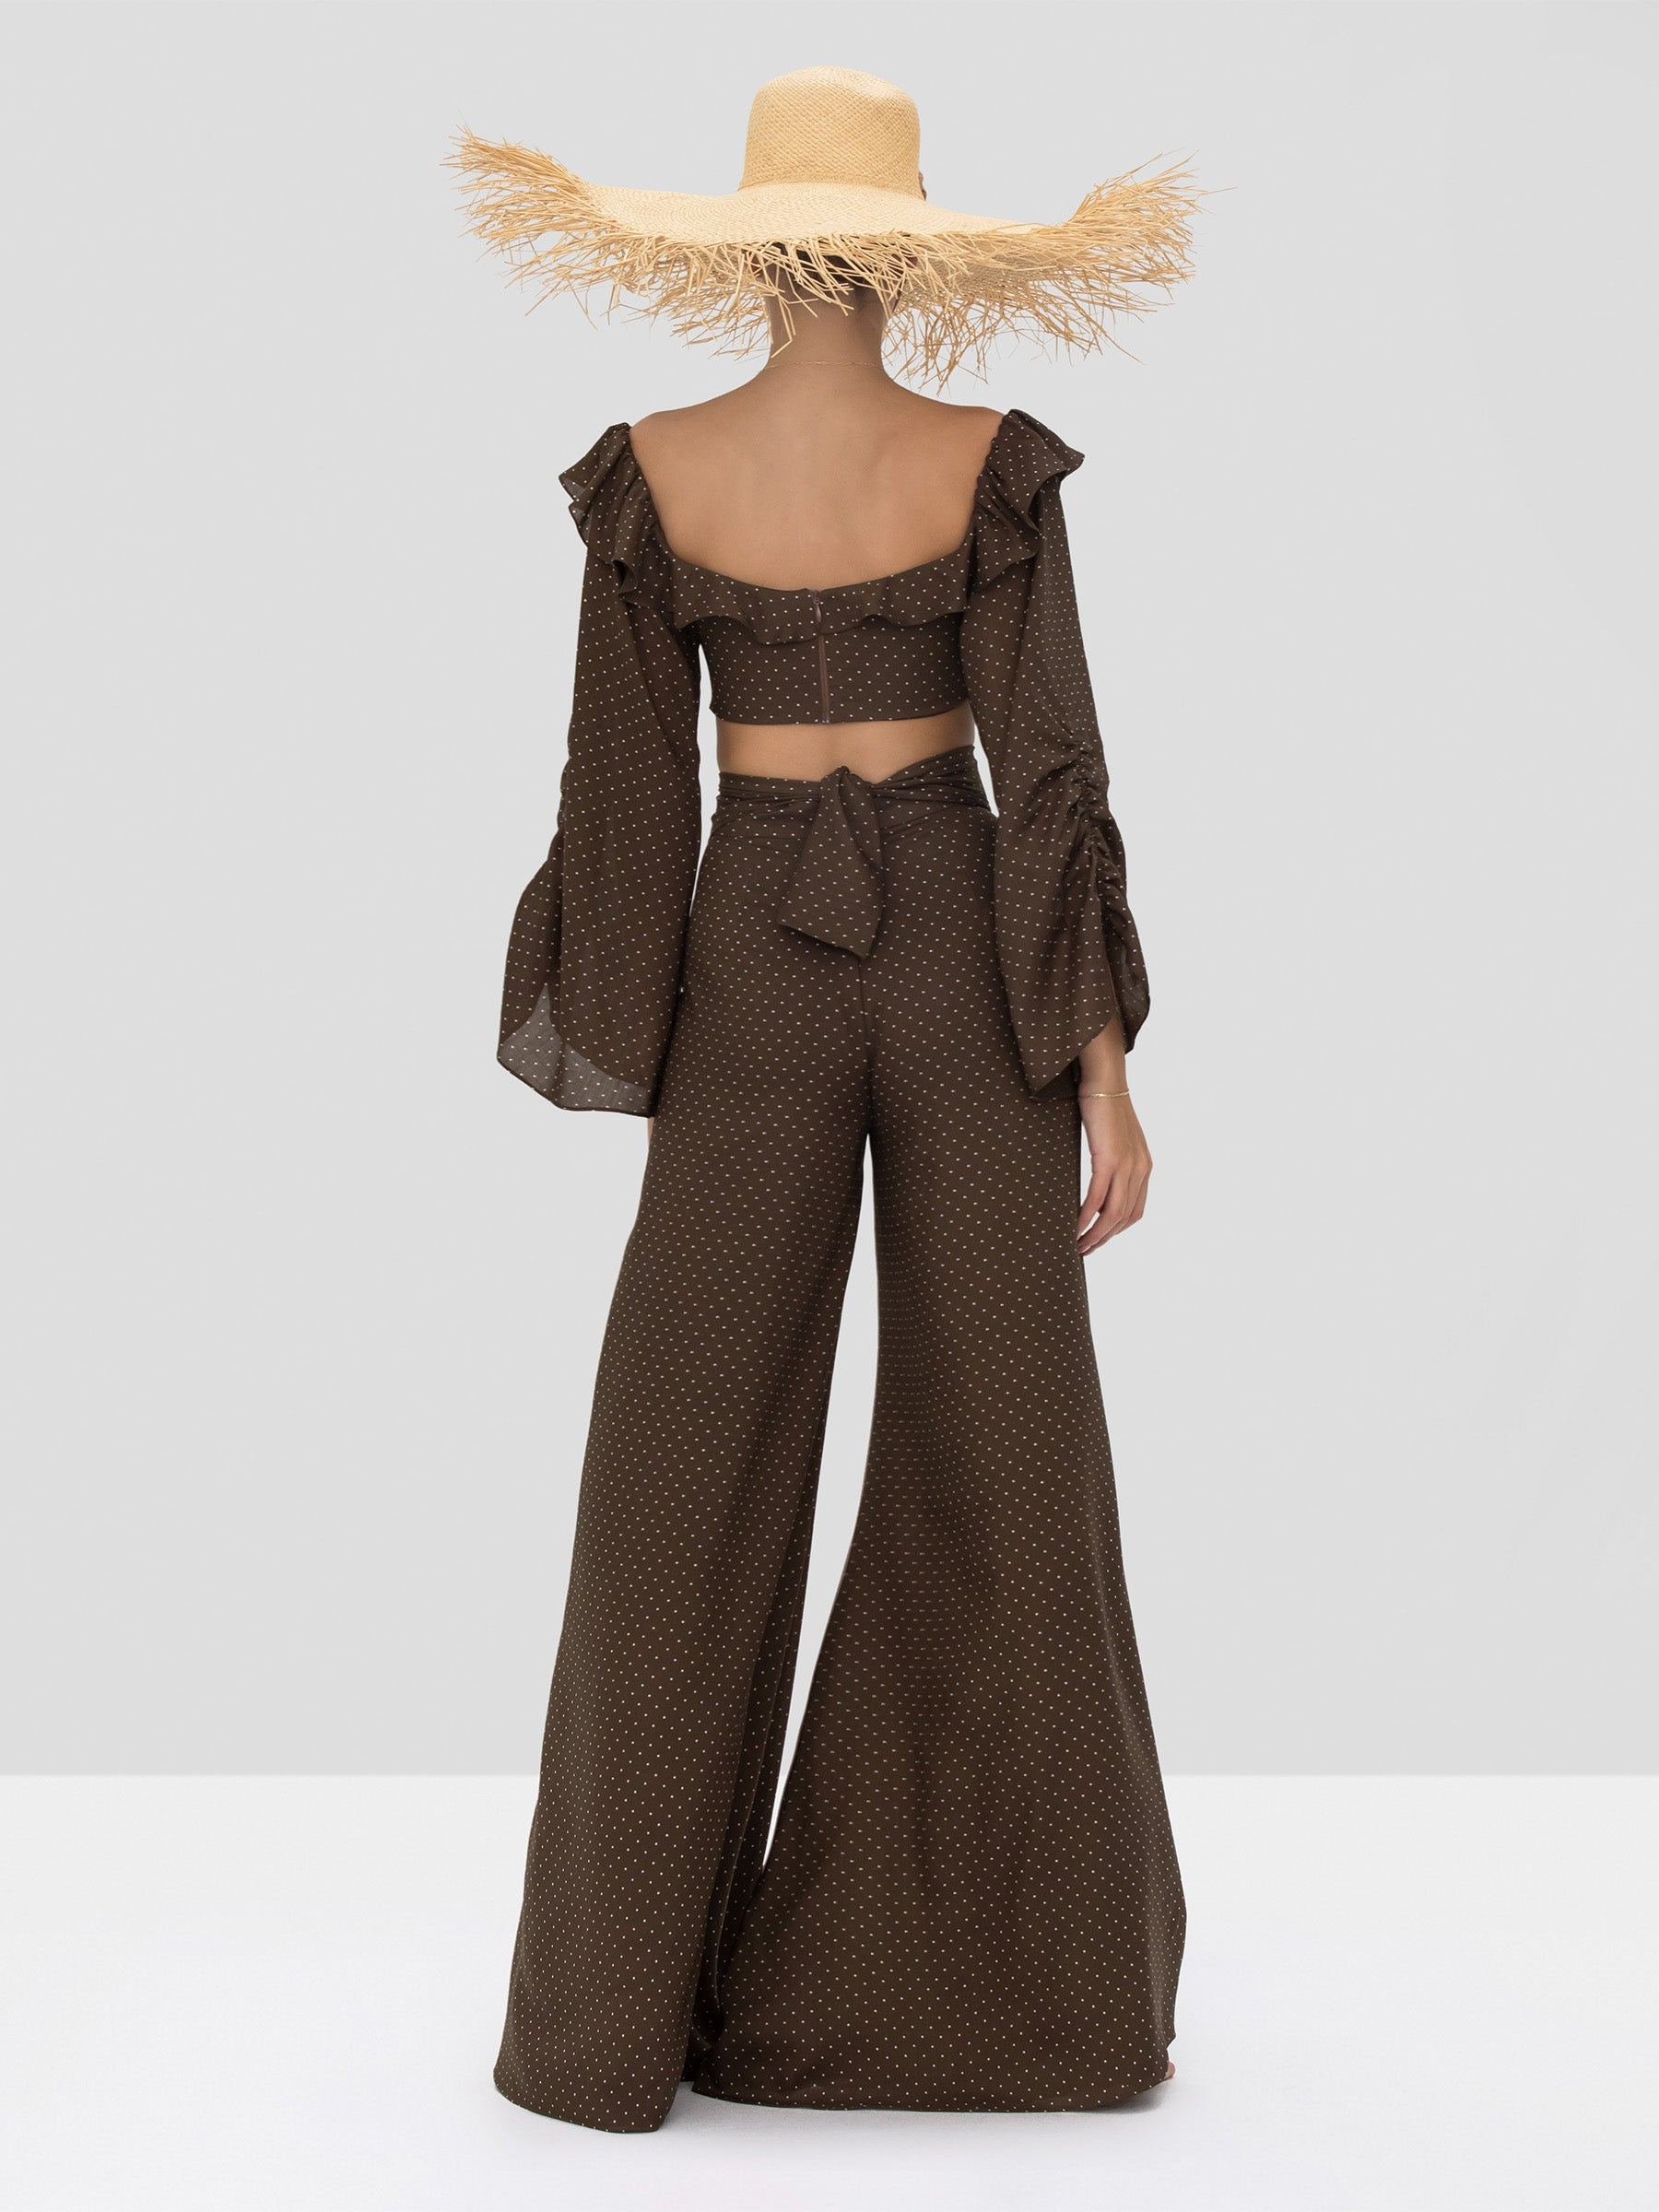 Alexis Antonin Pant and Ewa Crop Top in Mocha Dot Linen from the Spring Summer 2020 Collection - Rear View